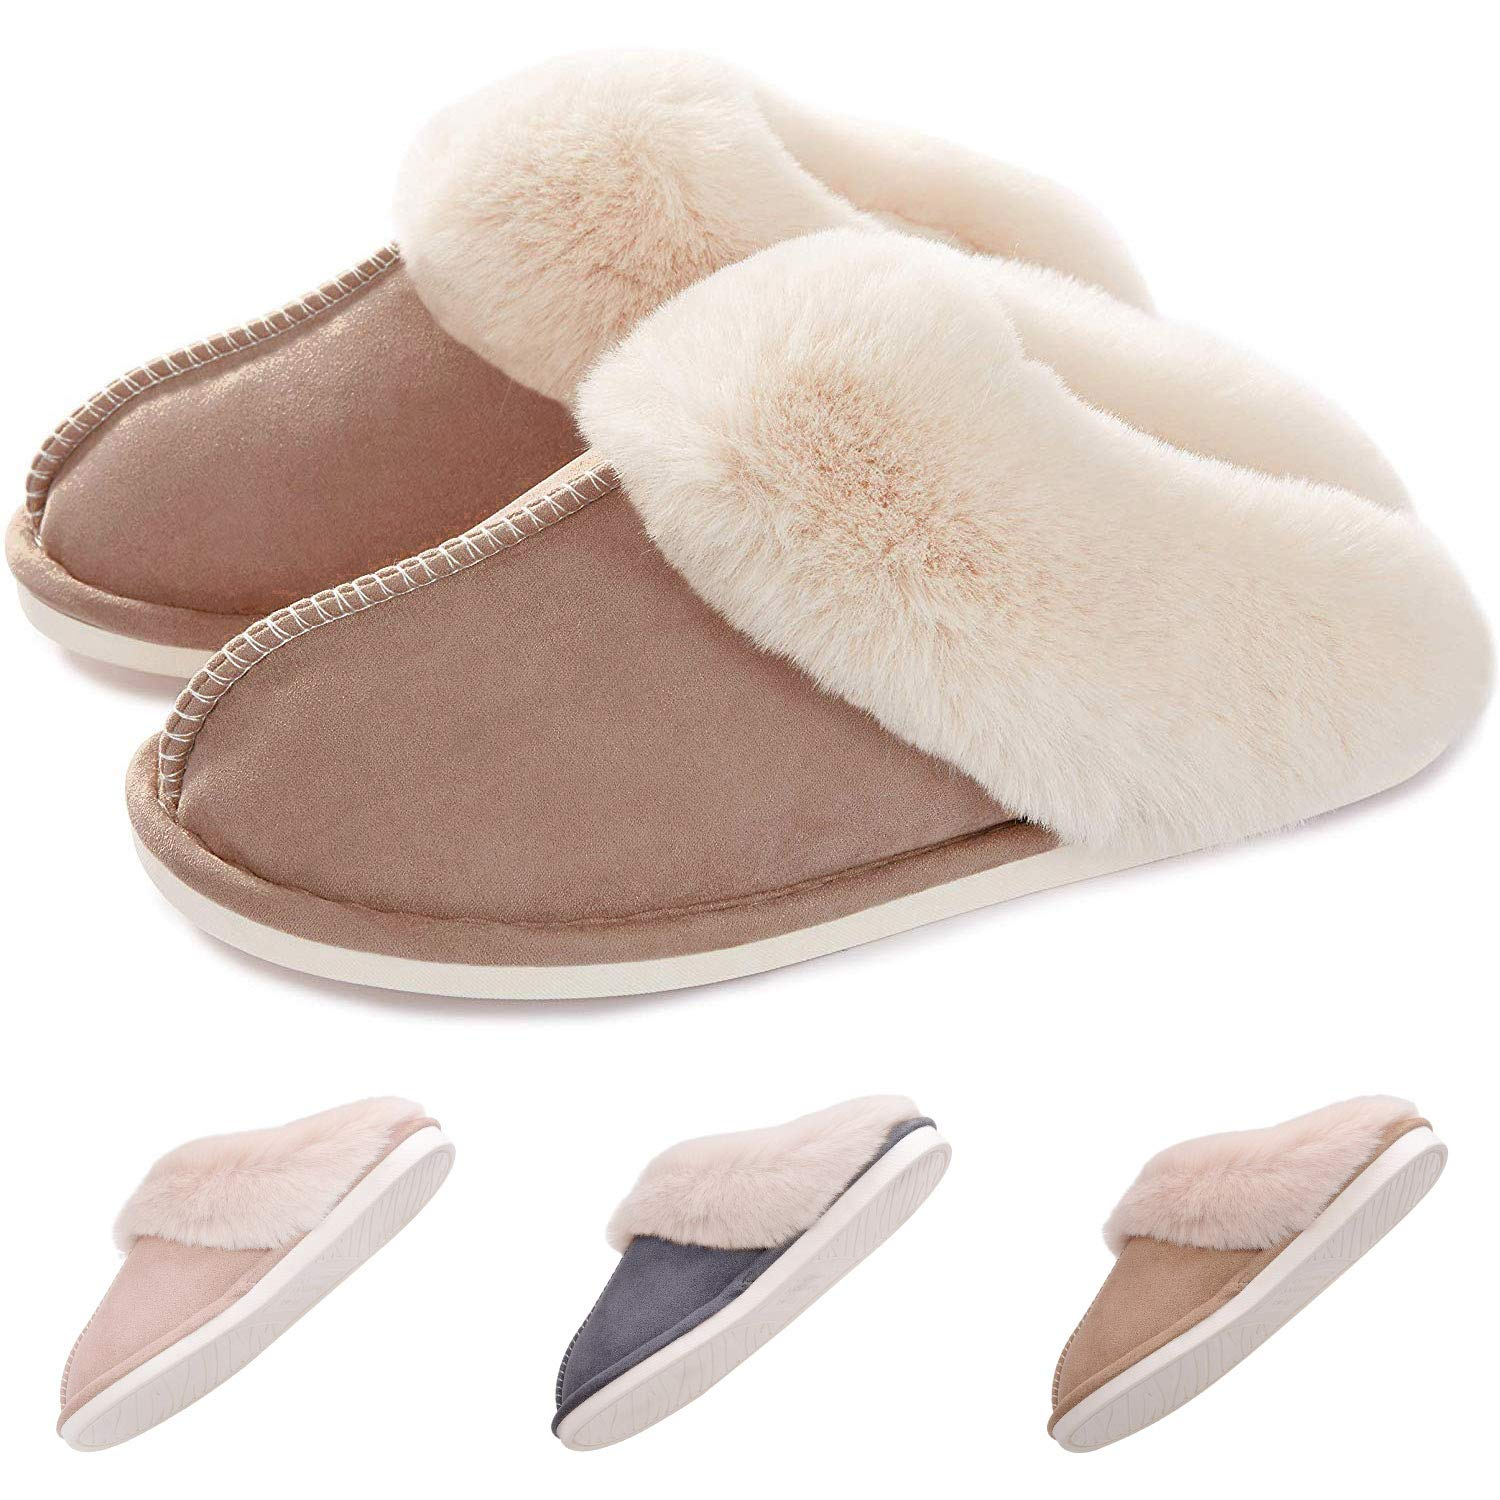 Women Slippers Memory Foam Fluffy Soft Warm Fuzzy Lining Slip On House Slippers, Non-Slip Cozy Slippers Shoes for Indoor Outdoor